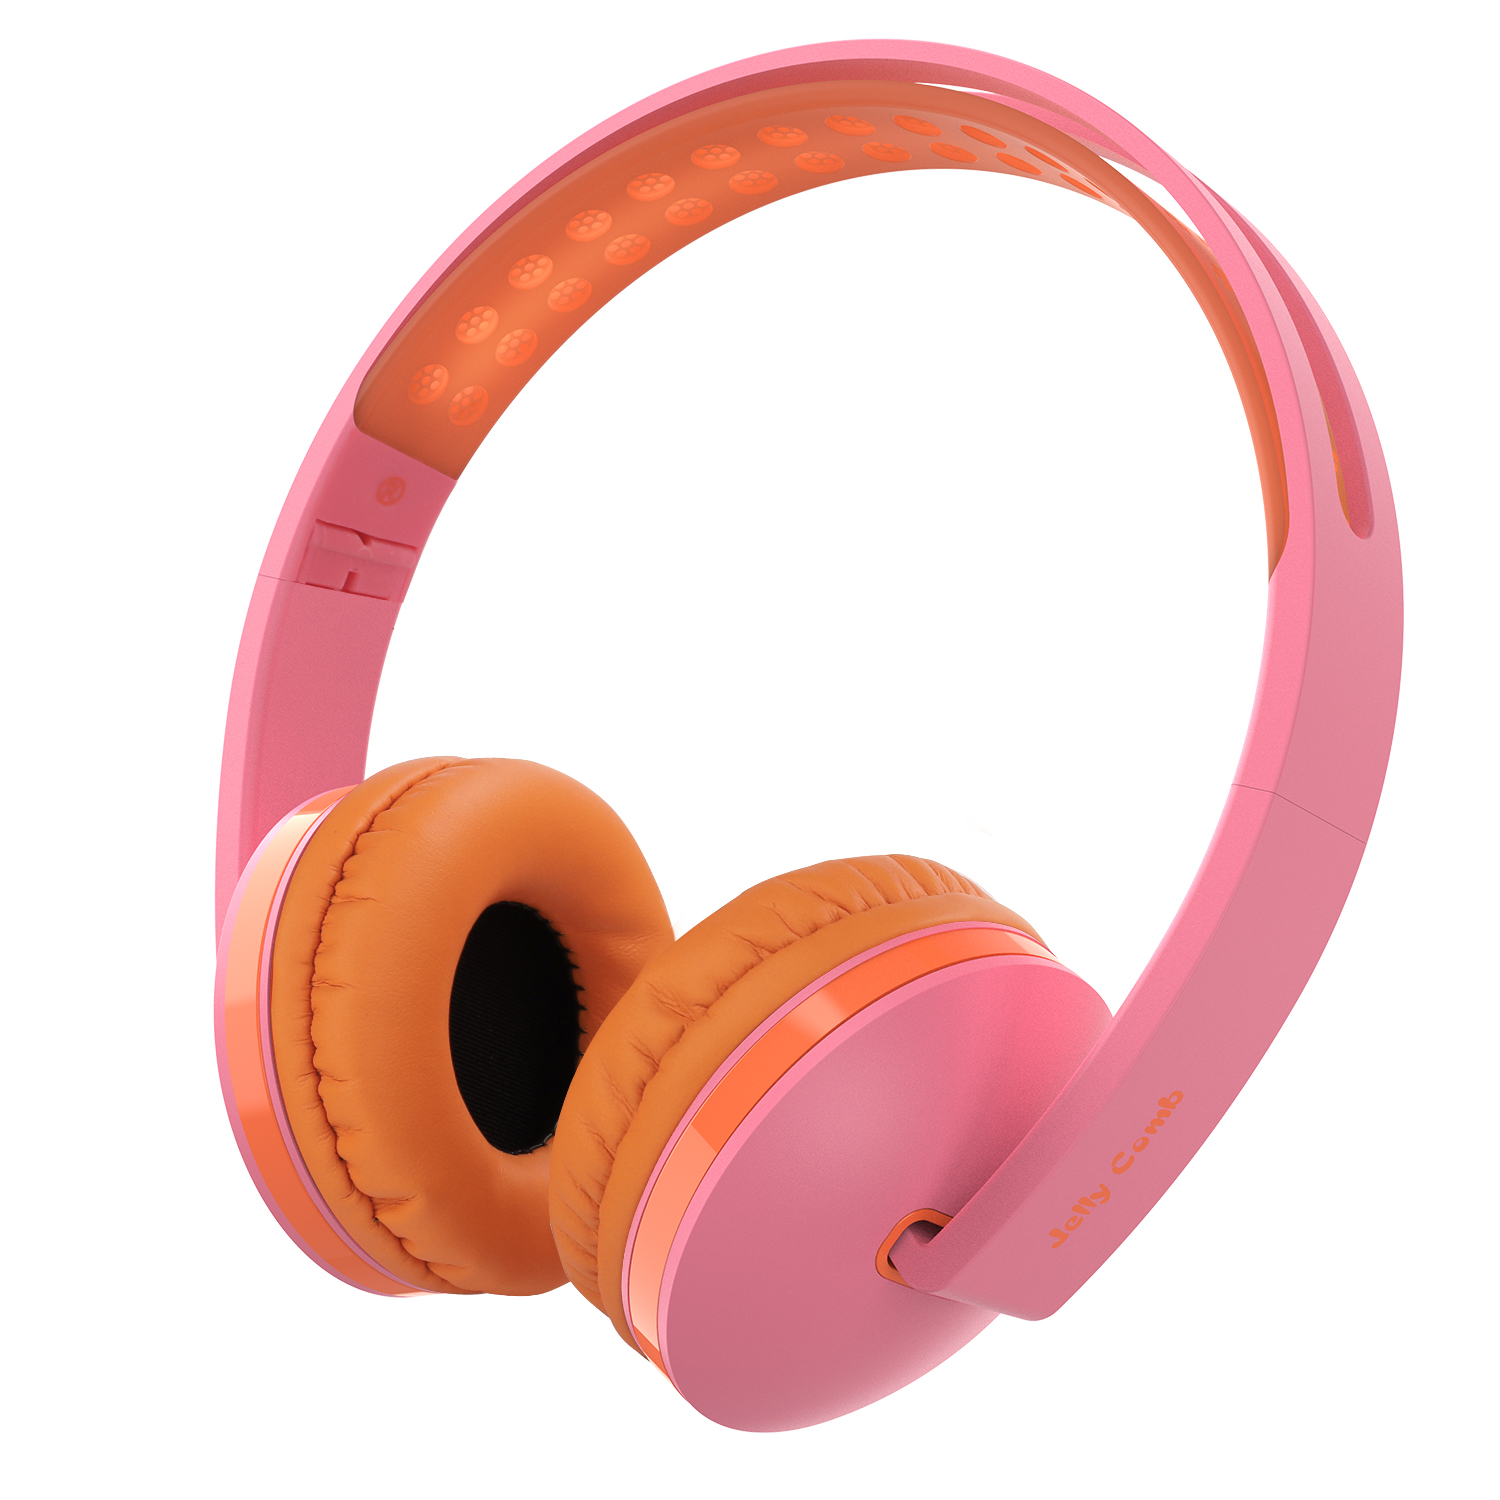 Headphones For Kids, Cute Cat Bunny Ear Headphones Volume Limited Wired On-Ear Kids Headphones Headsets for Girls, Children, Kids, 85dB Volume Limited,Pink